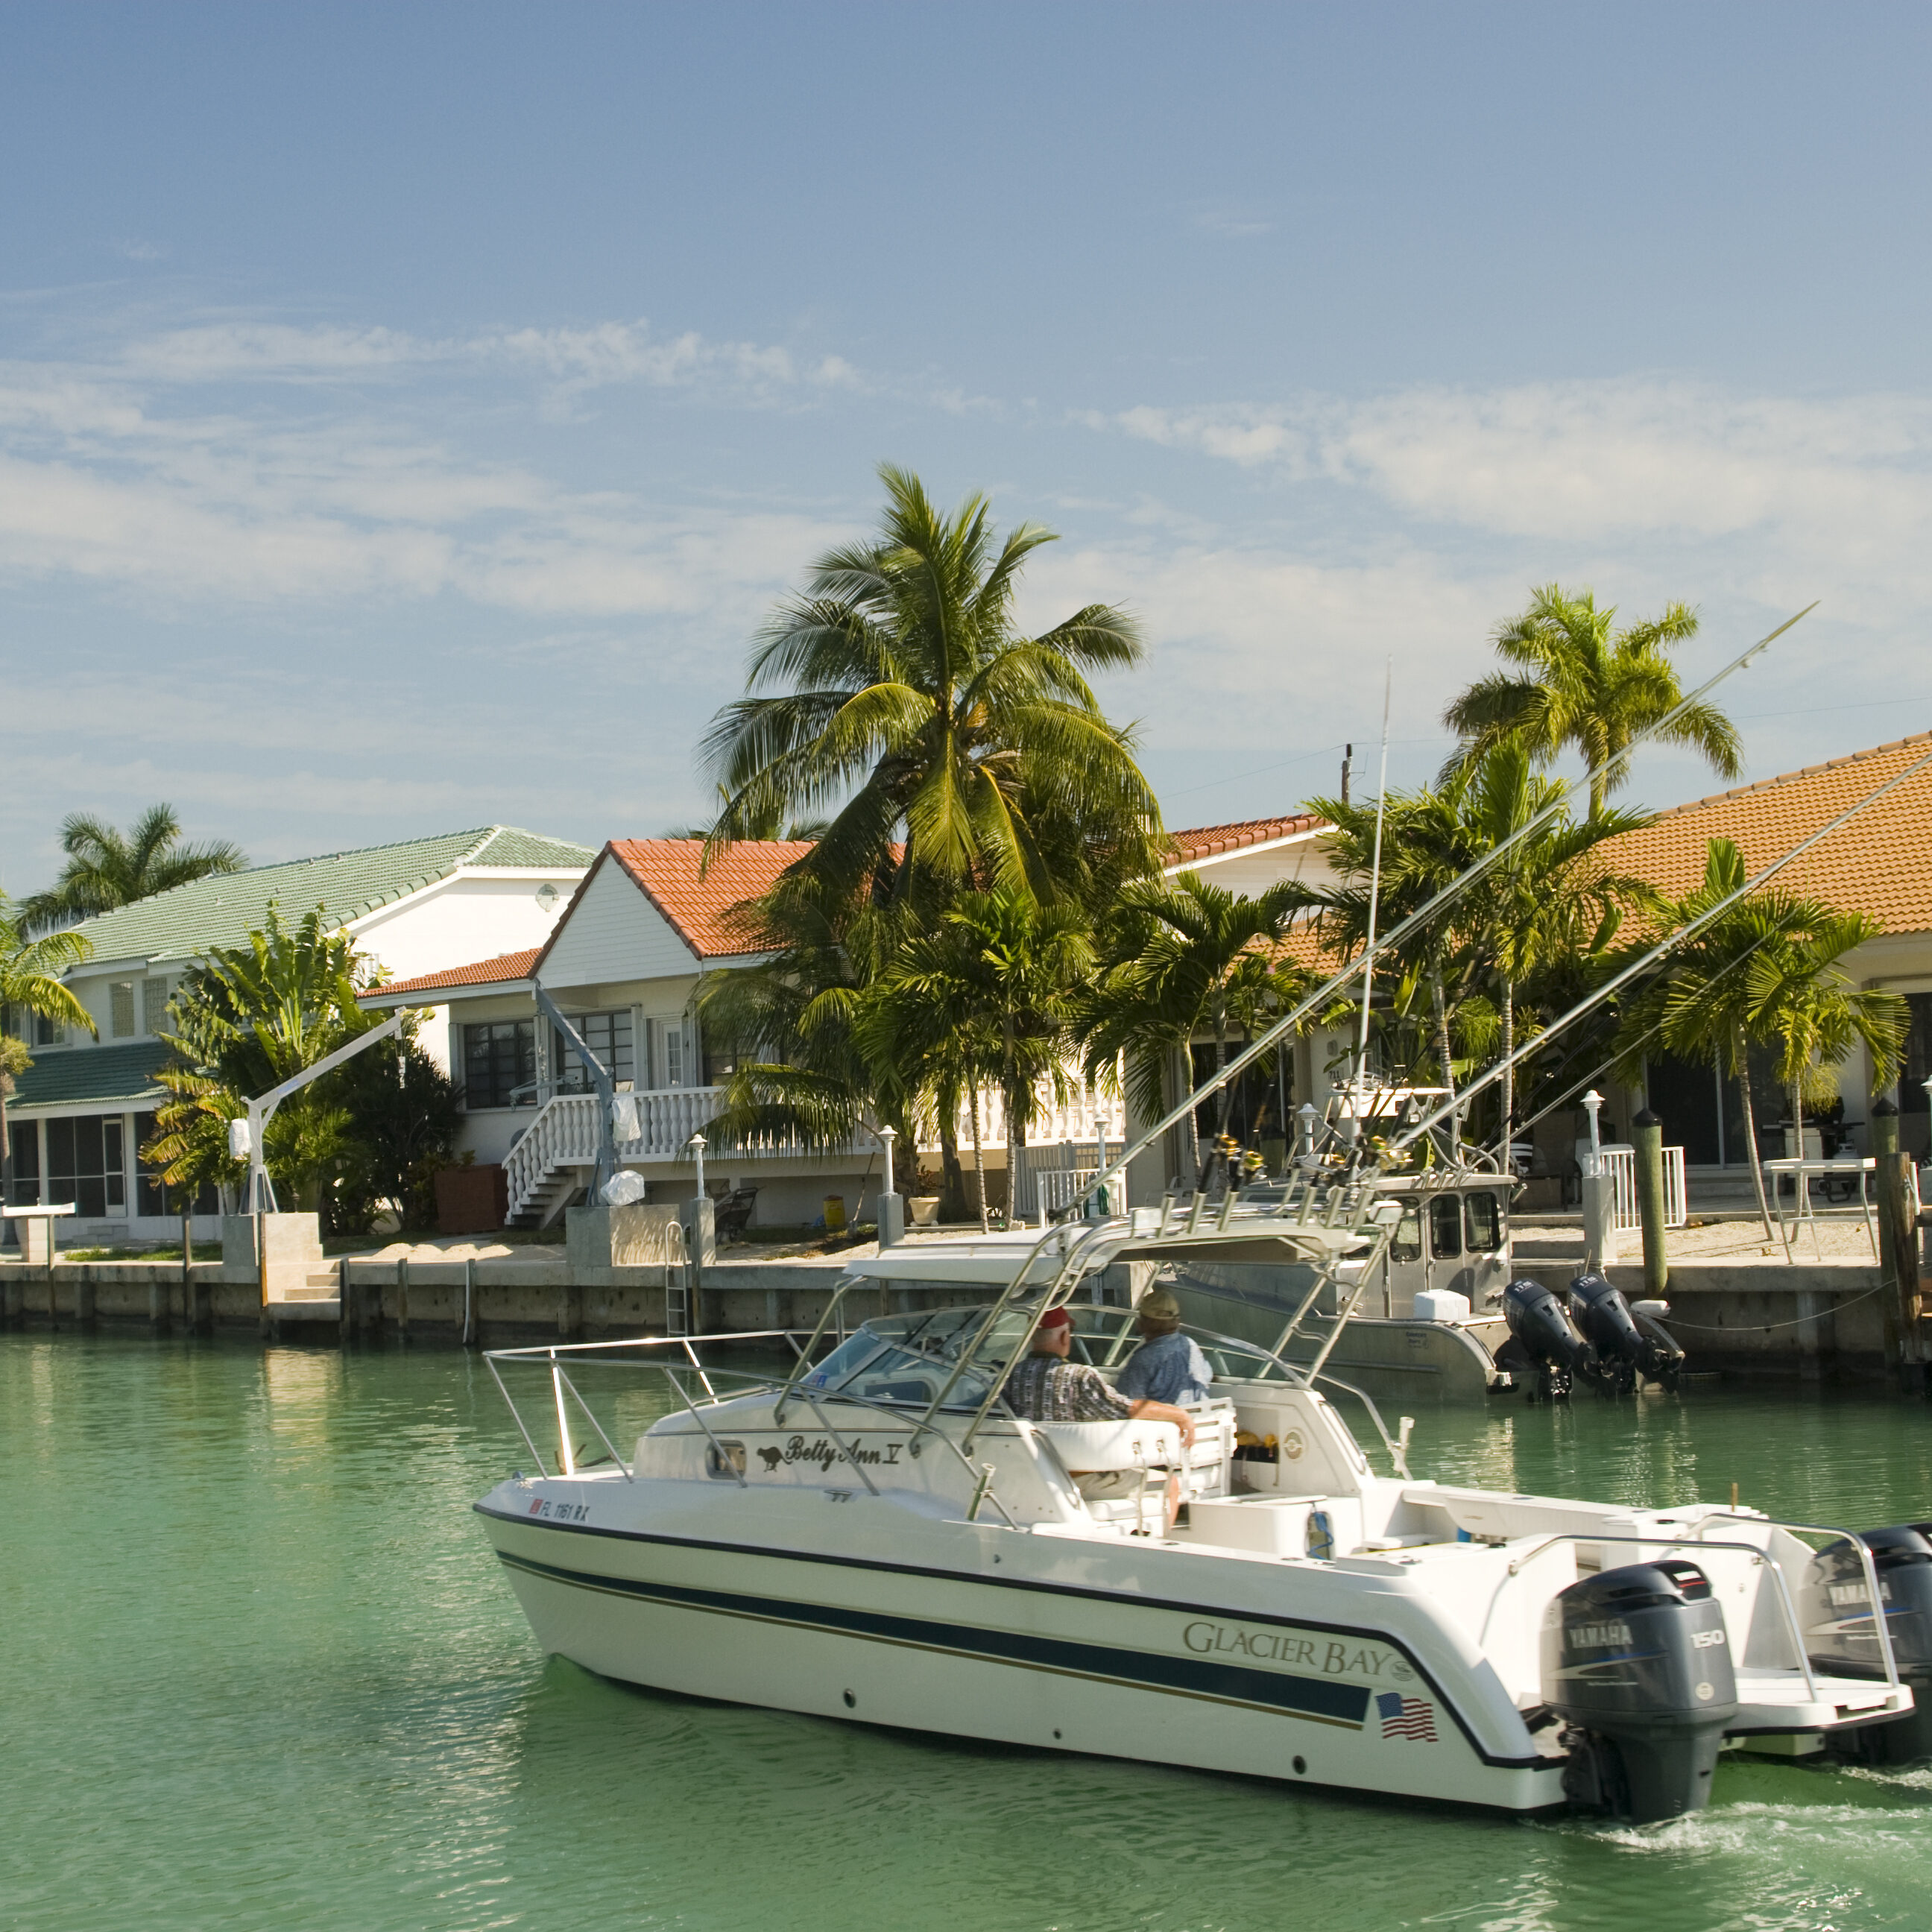 image of a boat going down a canal in the Florida Keys